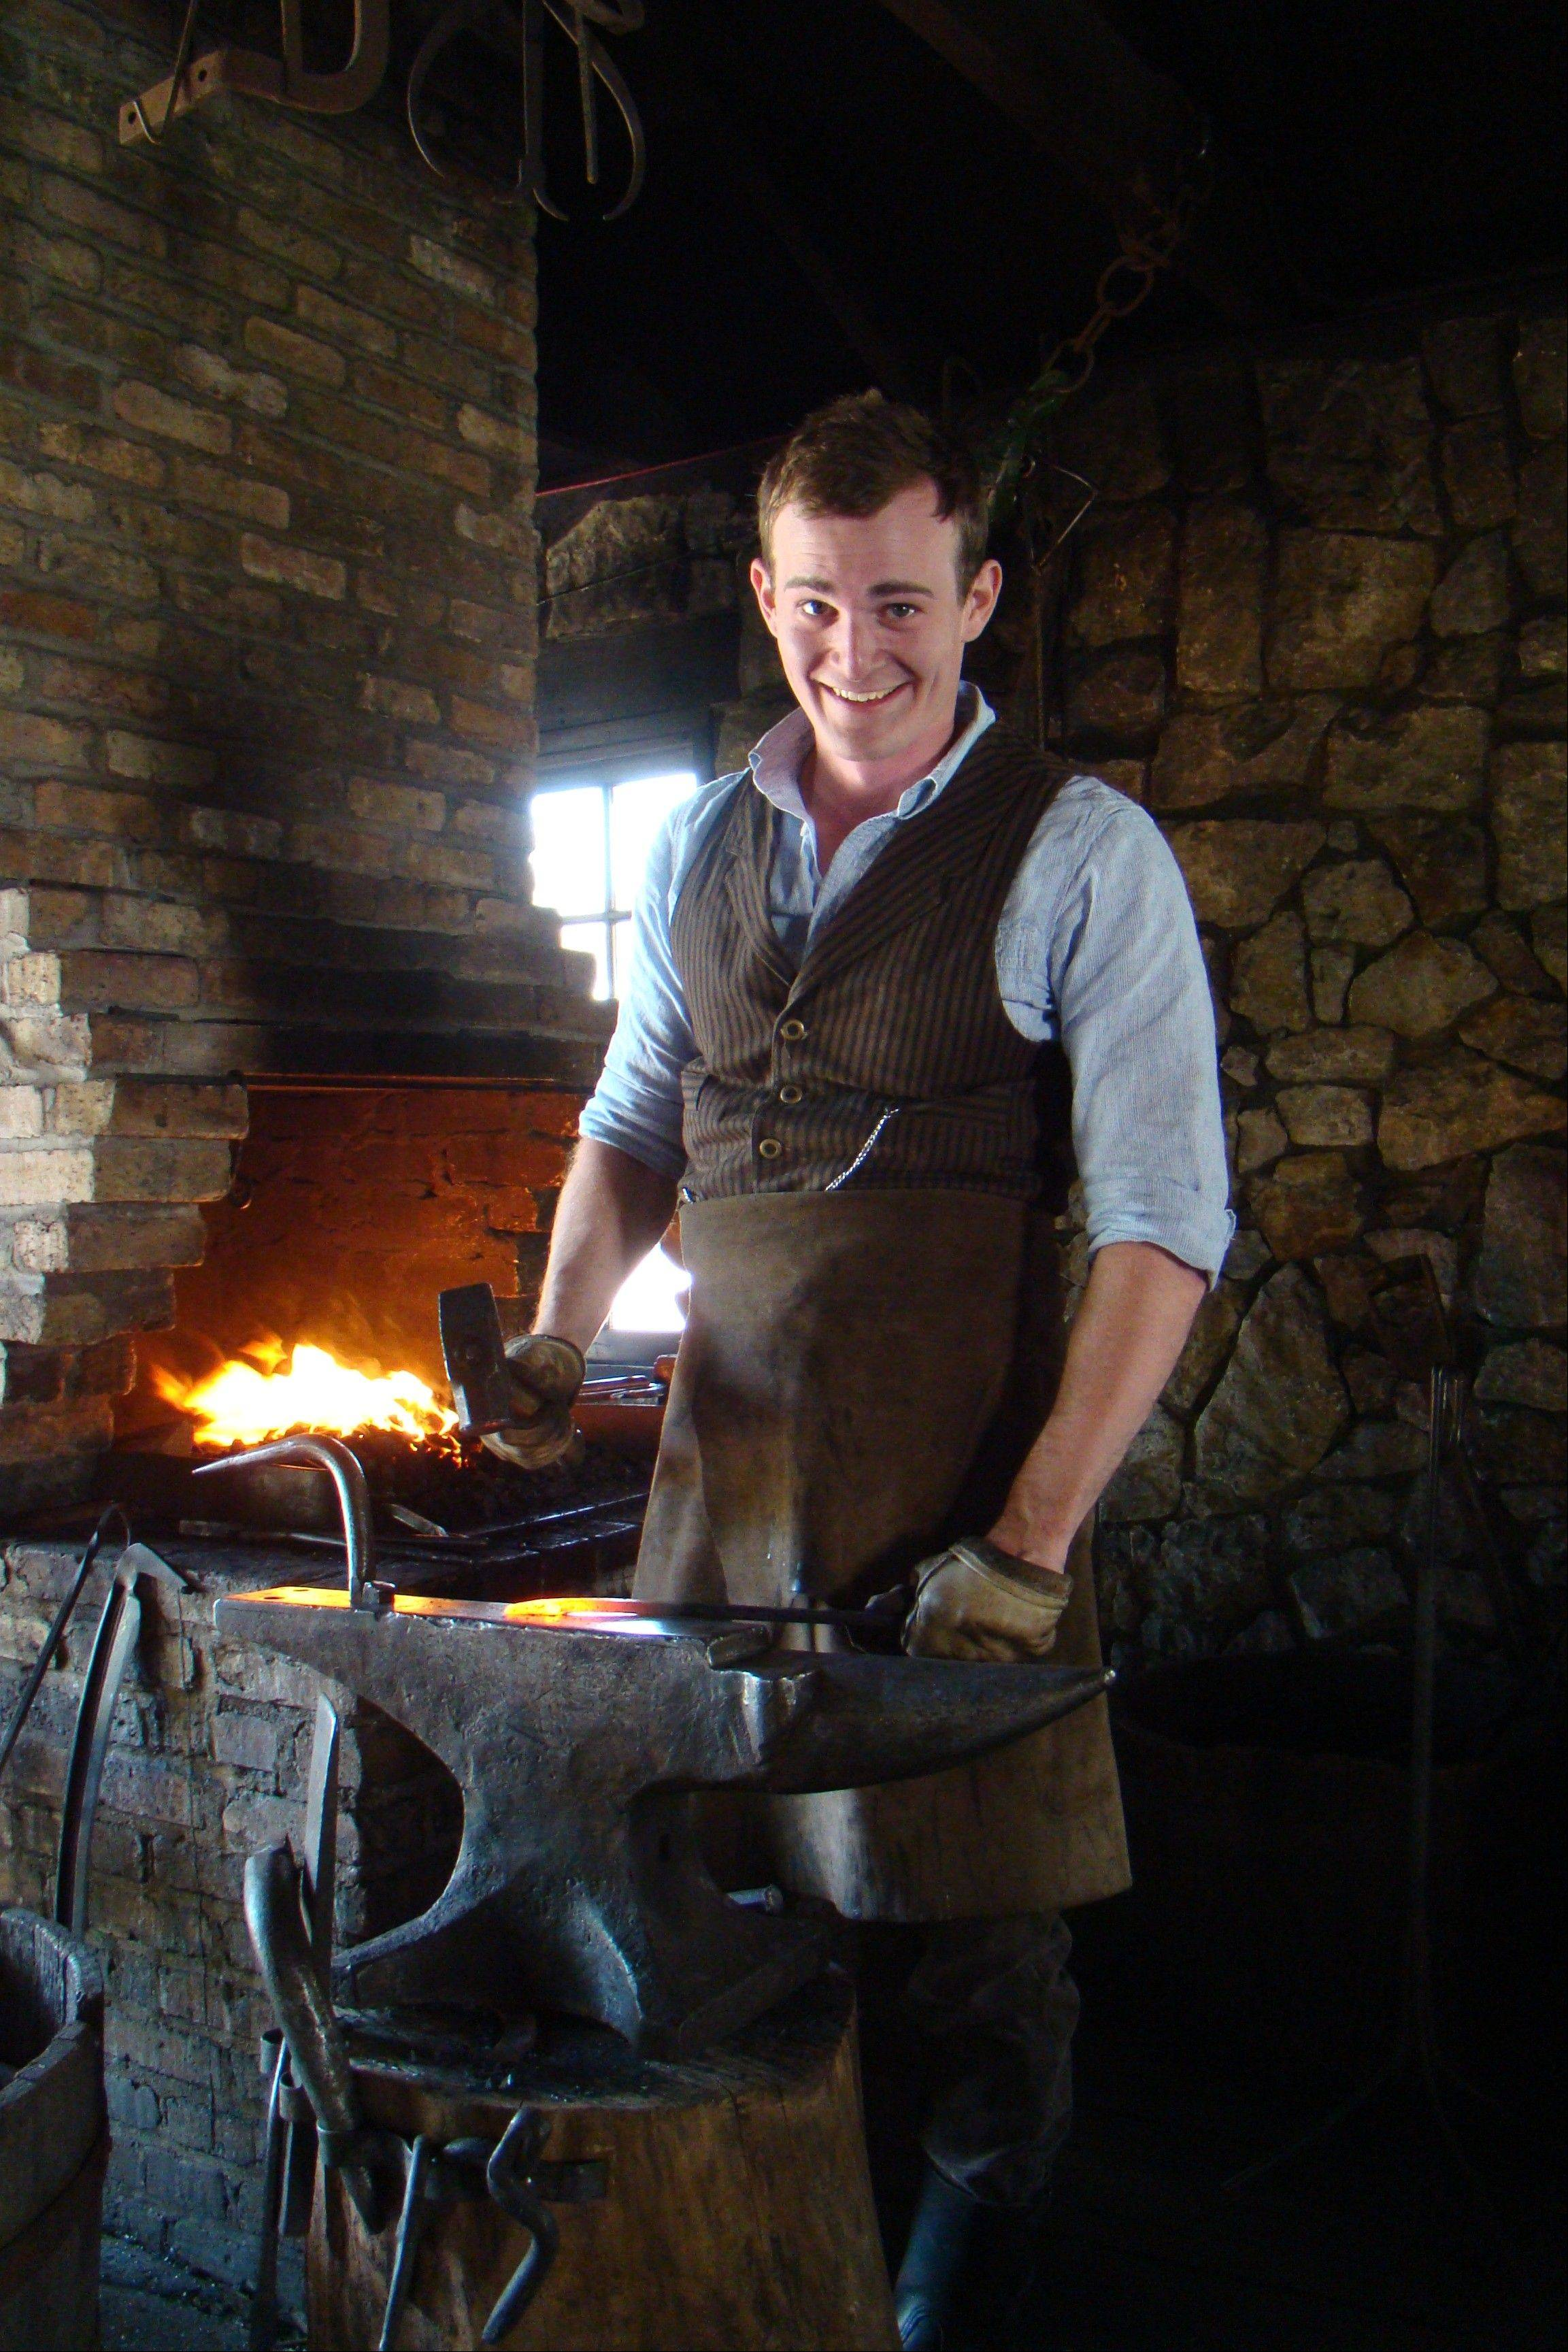 Museum educator Justin Stech demonstrates the art of blacksmithing at Naper Settlement in Naperville.